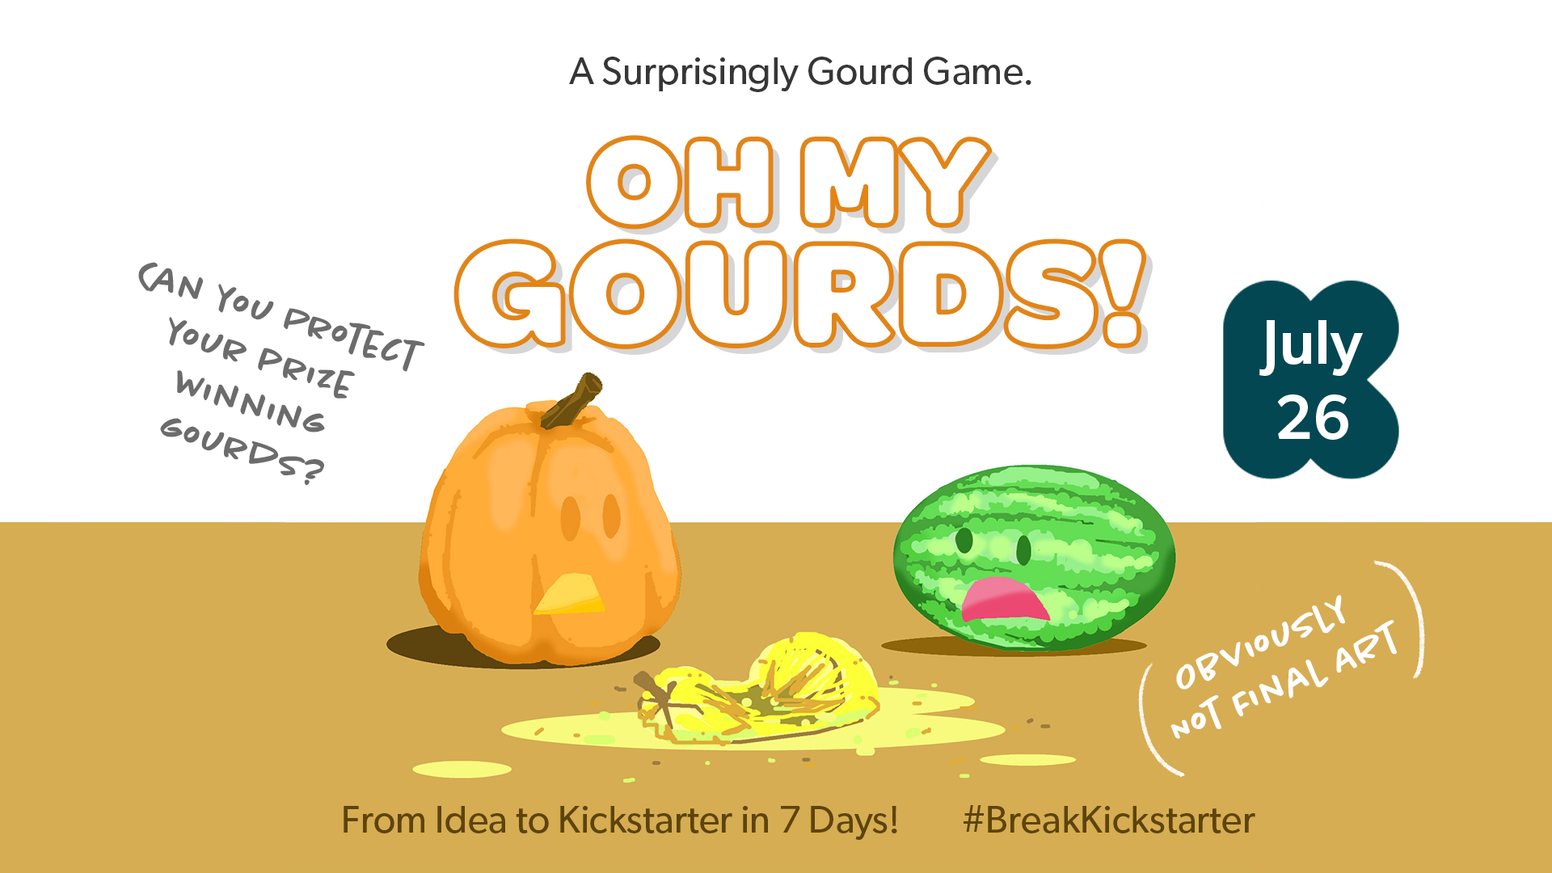 OH MY GOURDS is Fun, Fast 2 - 4 player card counting game, designed in just 7 days by Omari Akil and Matt Everhart to #BreakKickstarter